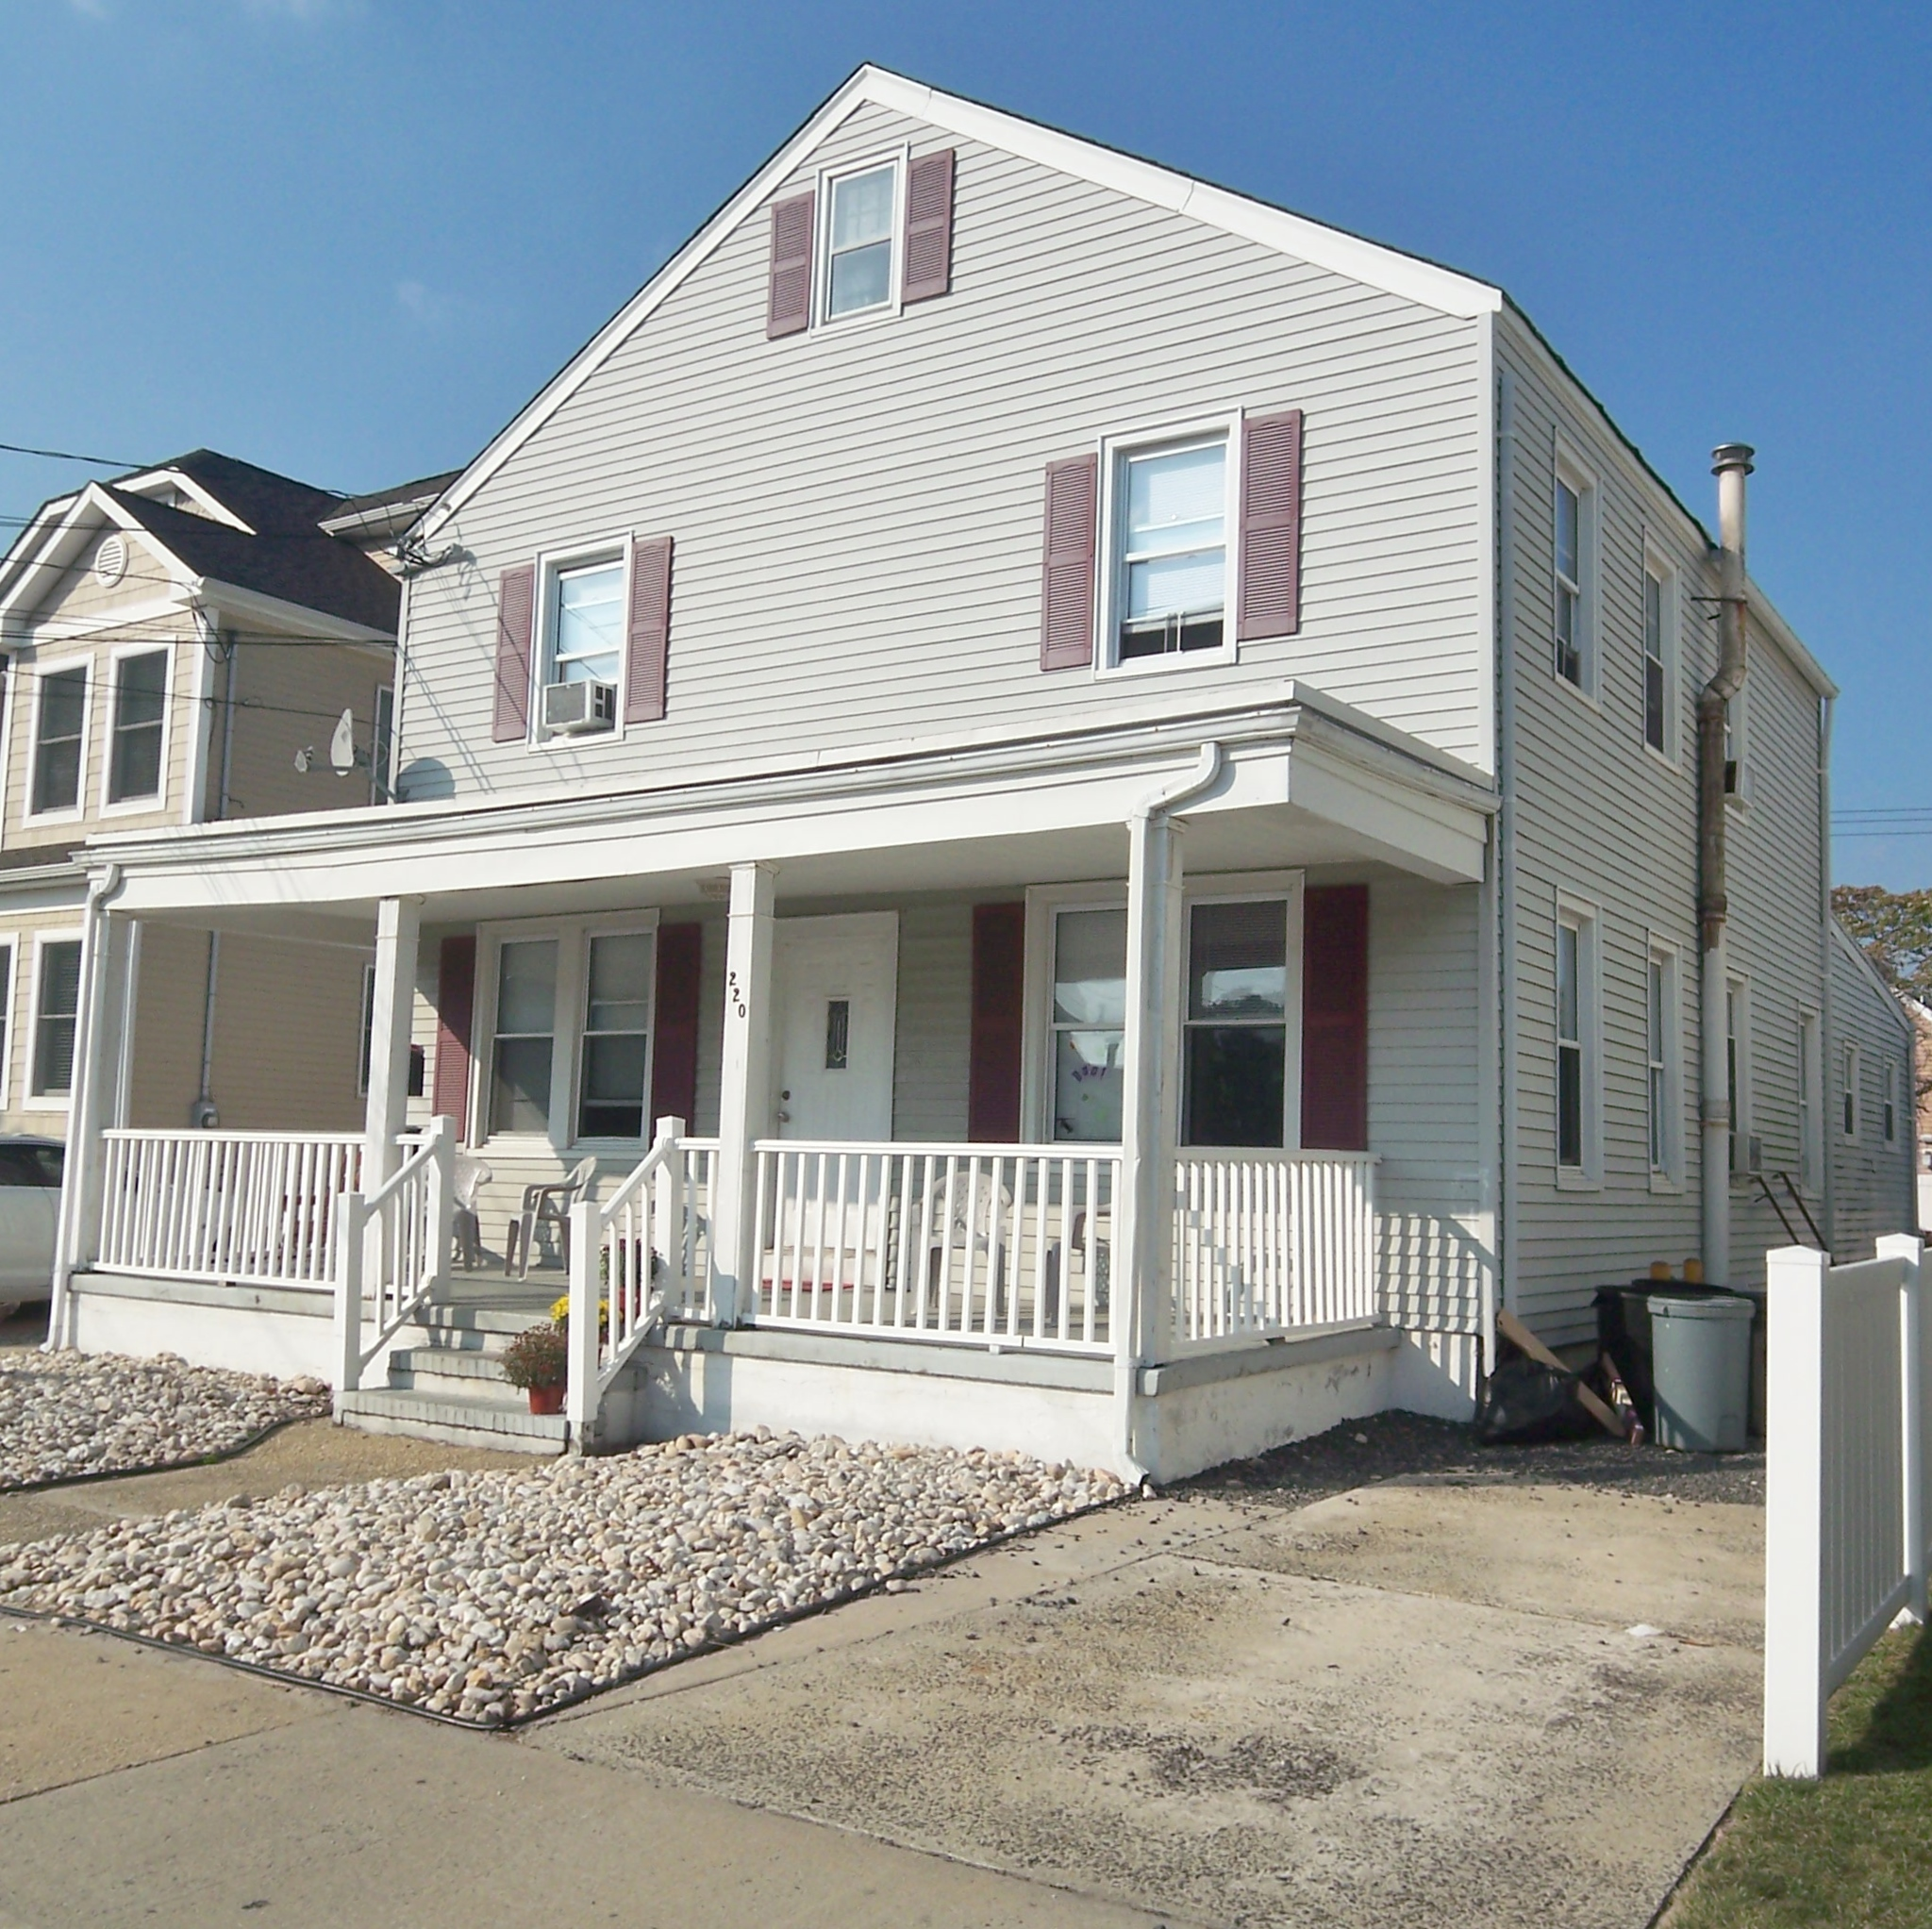 Multi-Family Home for Sale at Investment Property 220 15th Ave Belmar, New Jersey 07719 United States